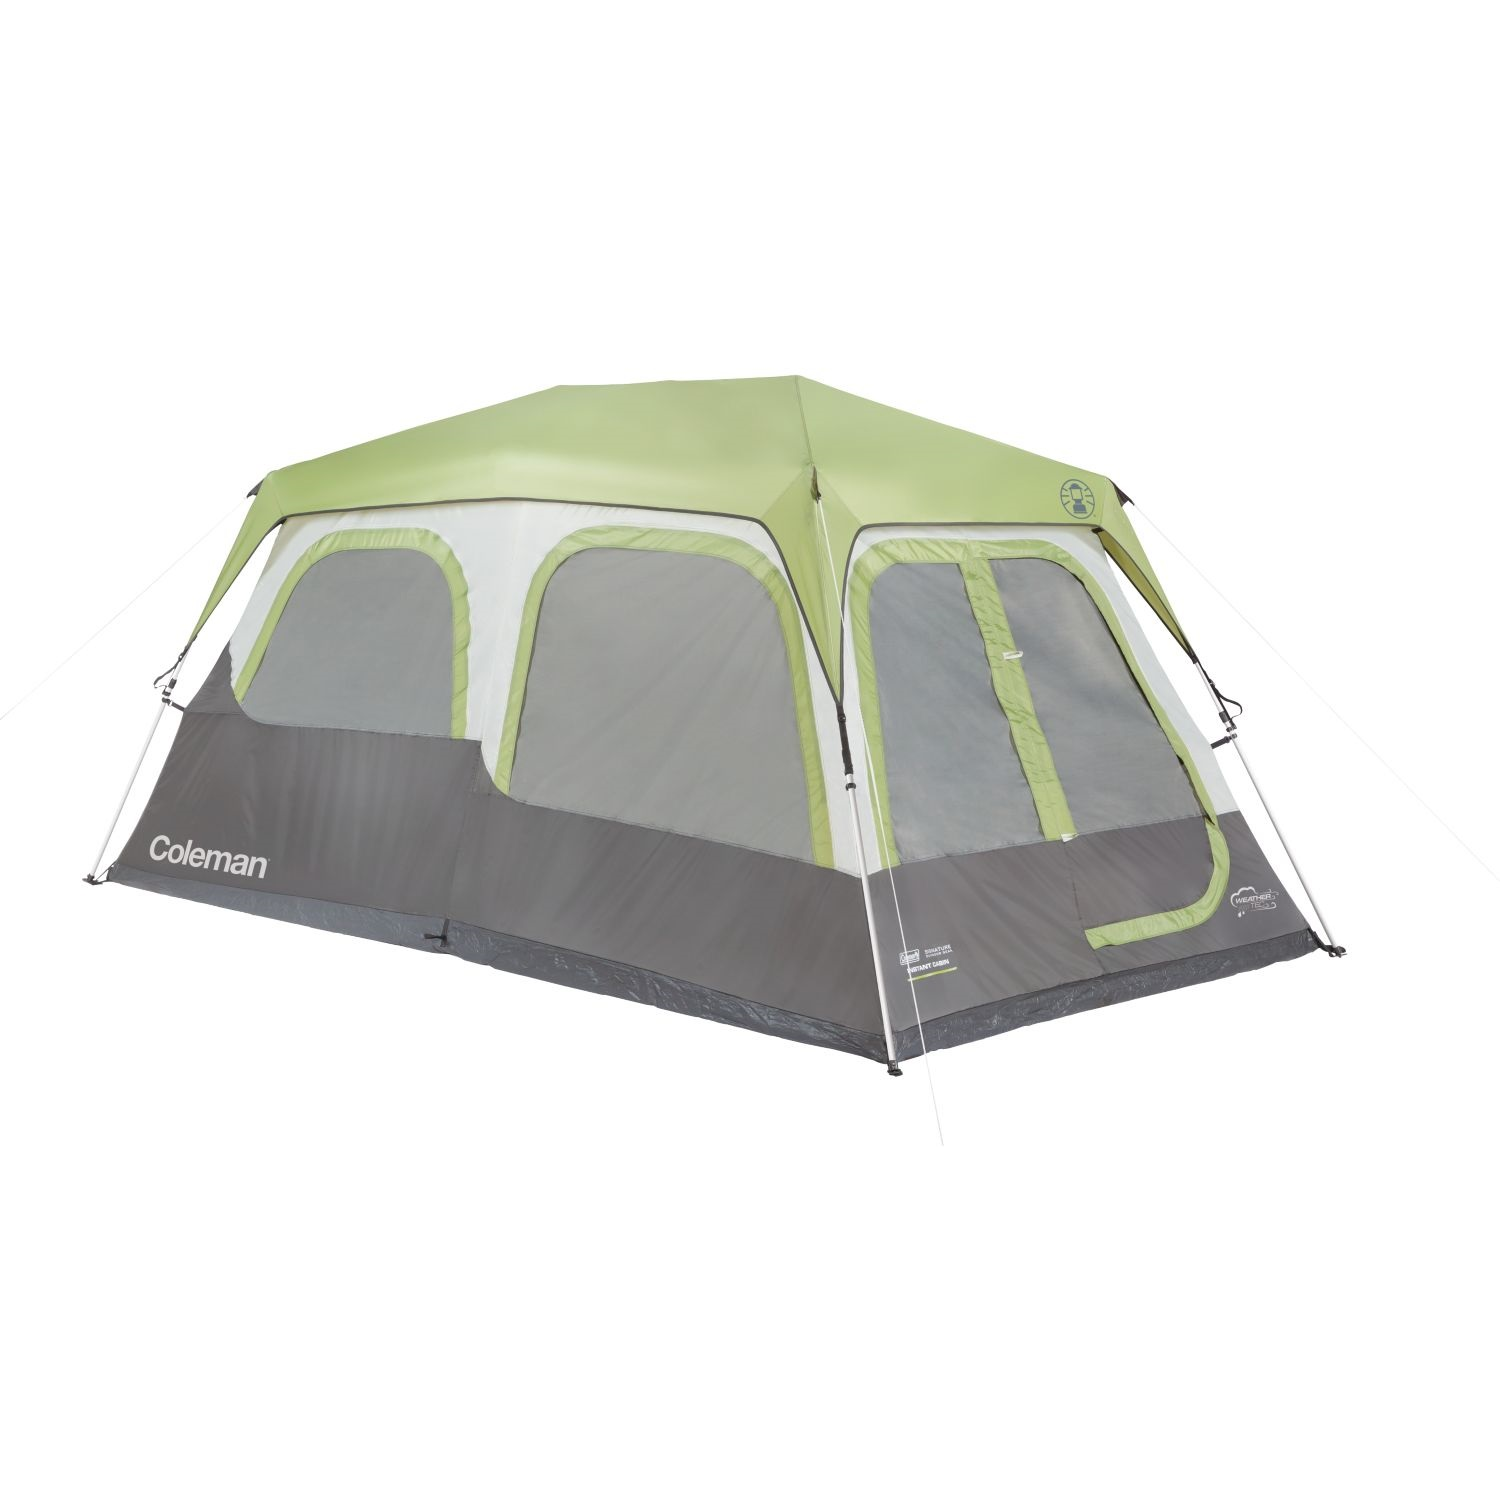 Coleman Tent Instant Cabin 8 Person W Fly Signature 14x8x6 4